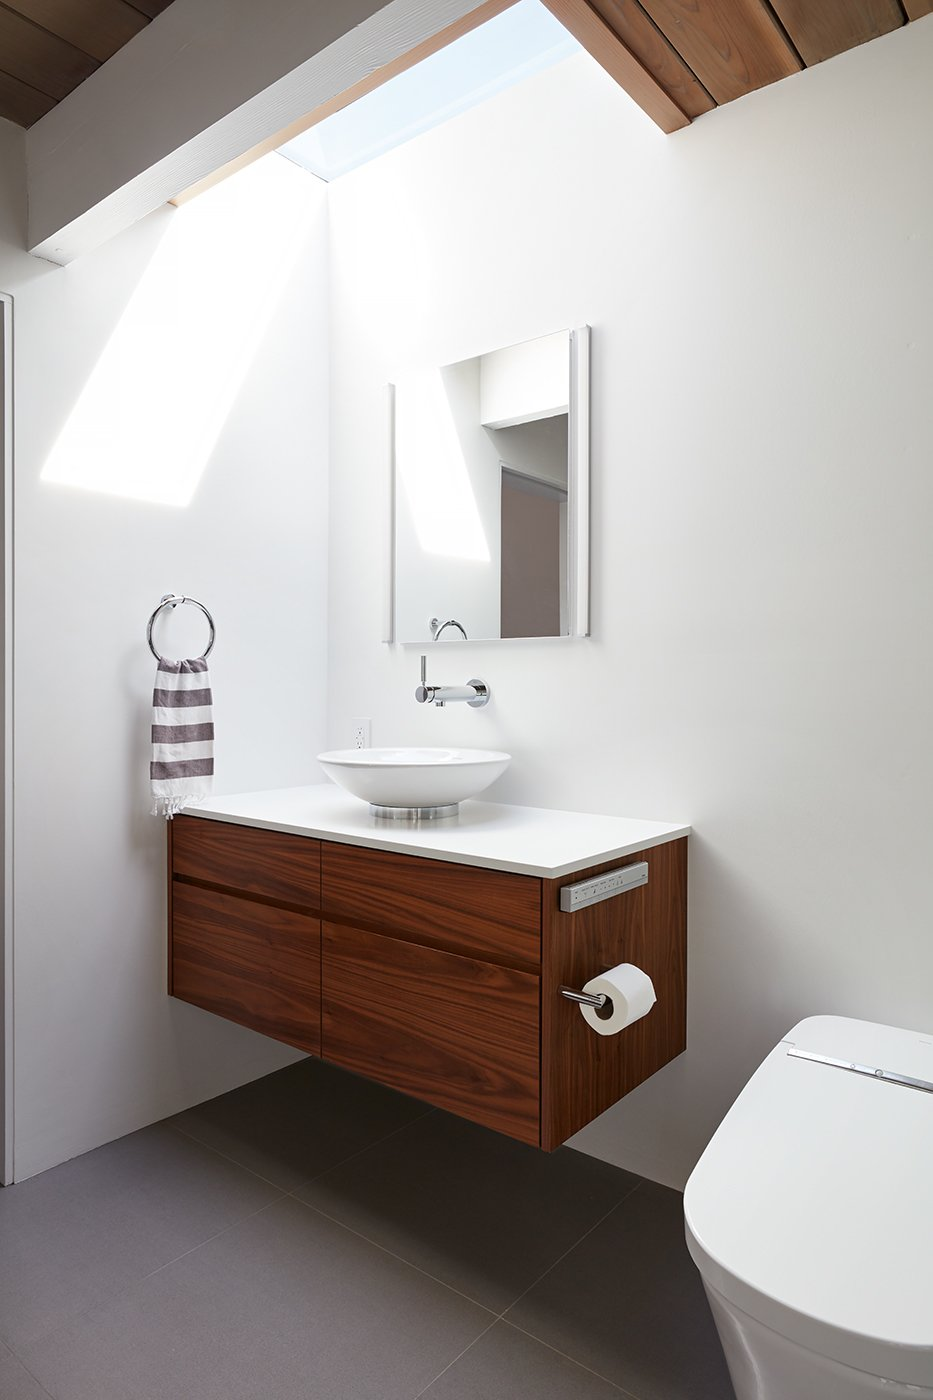 Bath Room, One Piece Toilet, Porcelain Tile Floor, Engineered Quartz Counter, and Vessel Sink A bathroom skylight increases the sense of space.     Photo 13 of 14 in This Eichler Home in California Mixes Scandinavian Vibes With Midcentury Charm